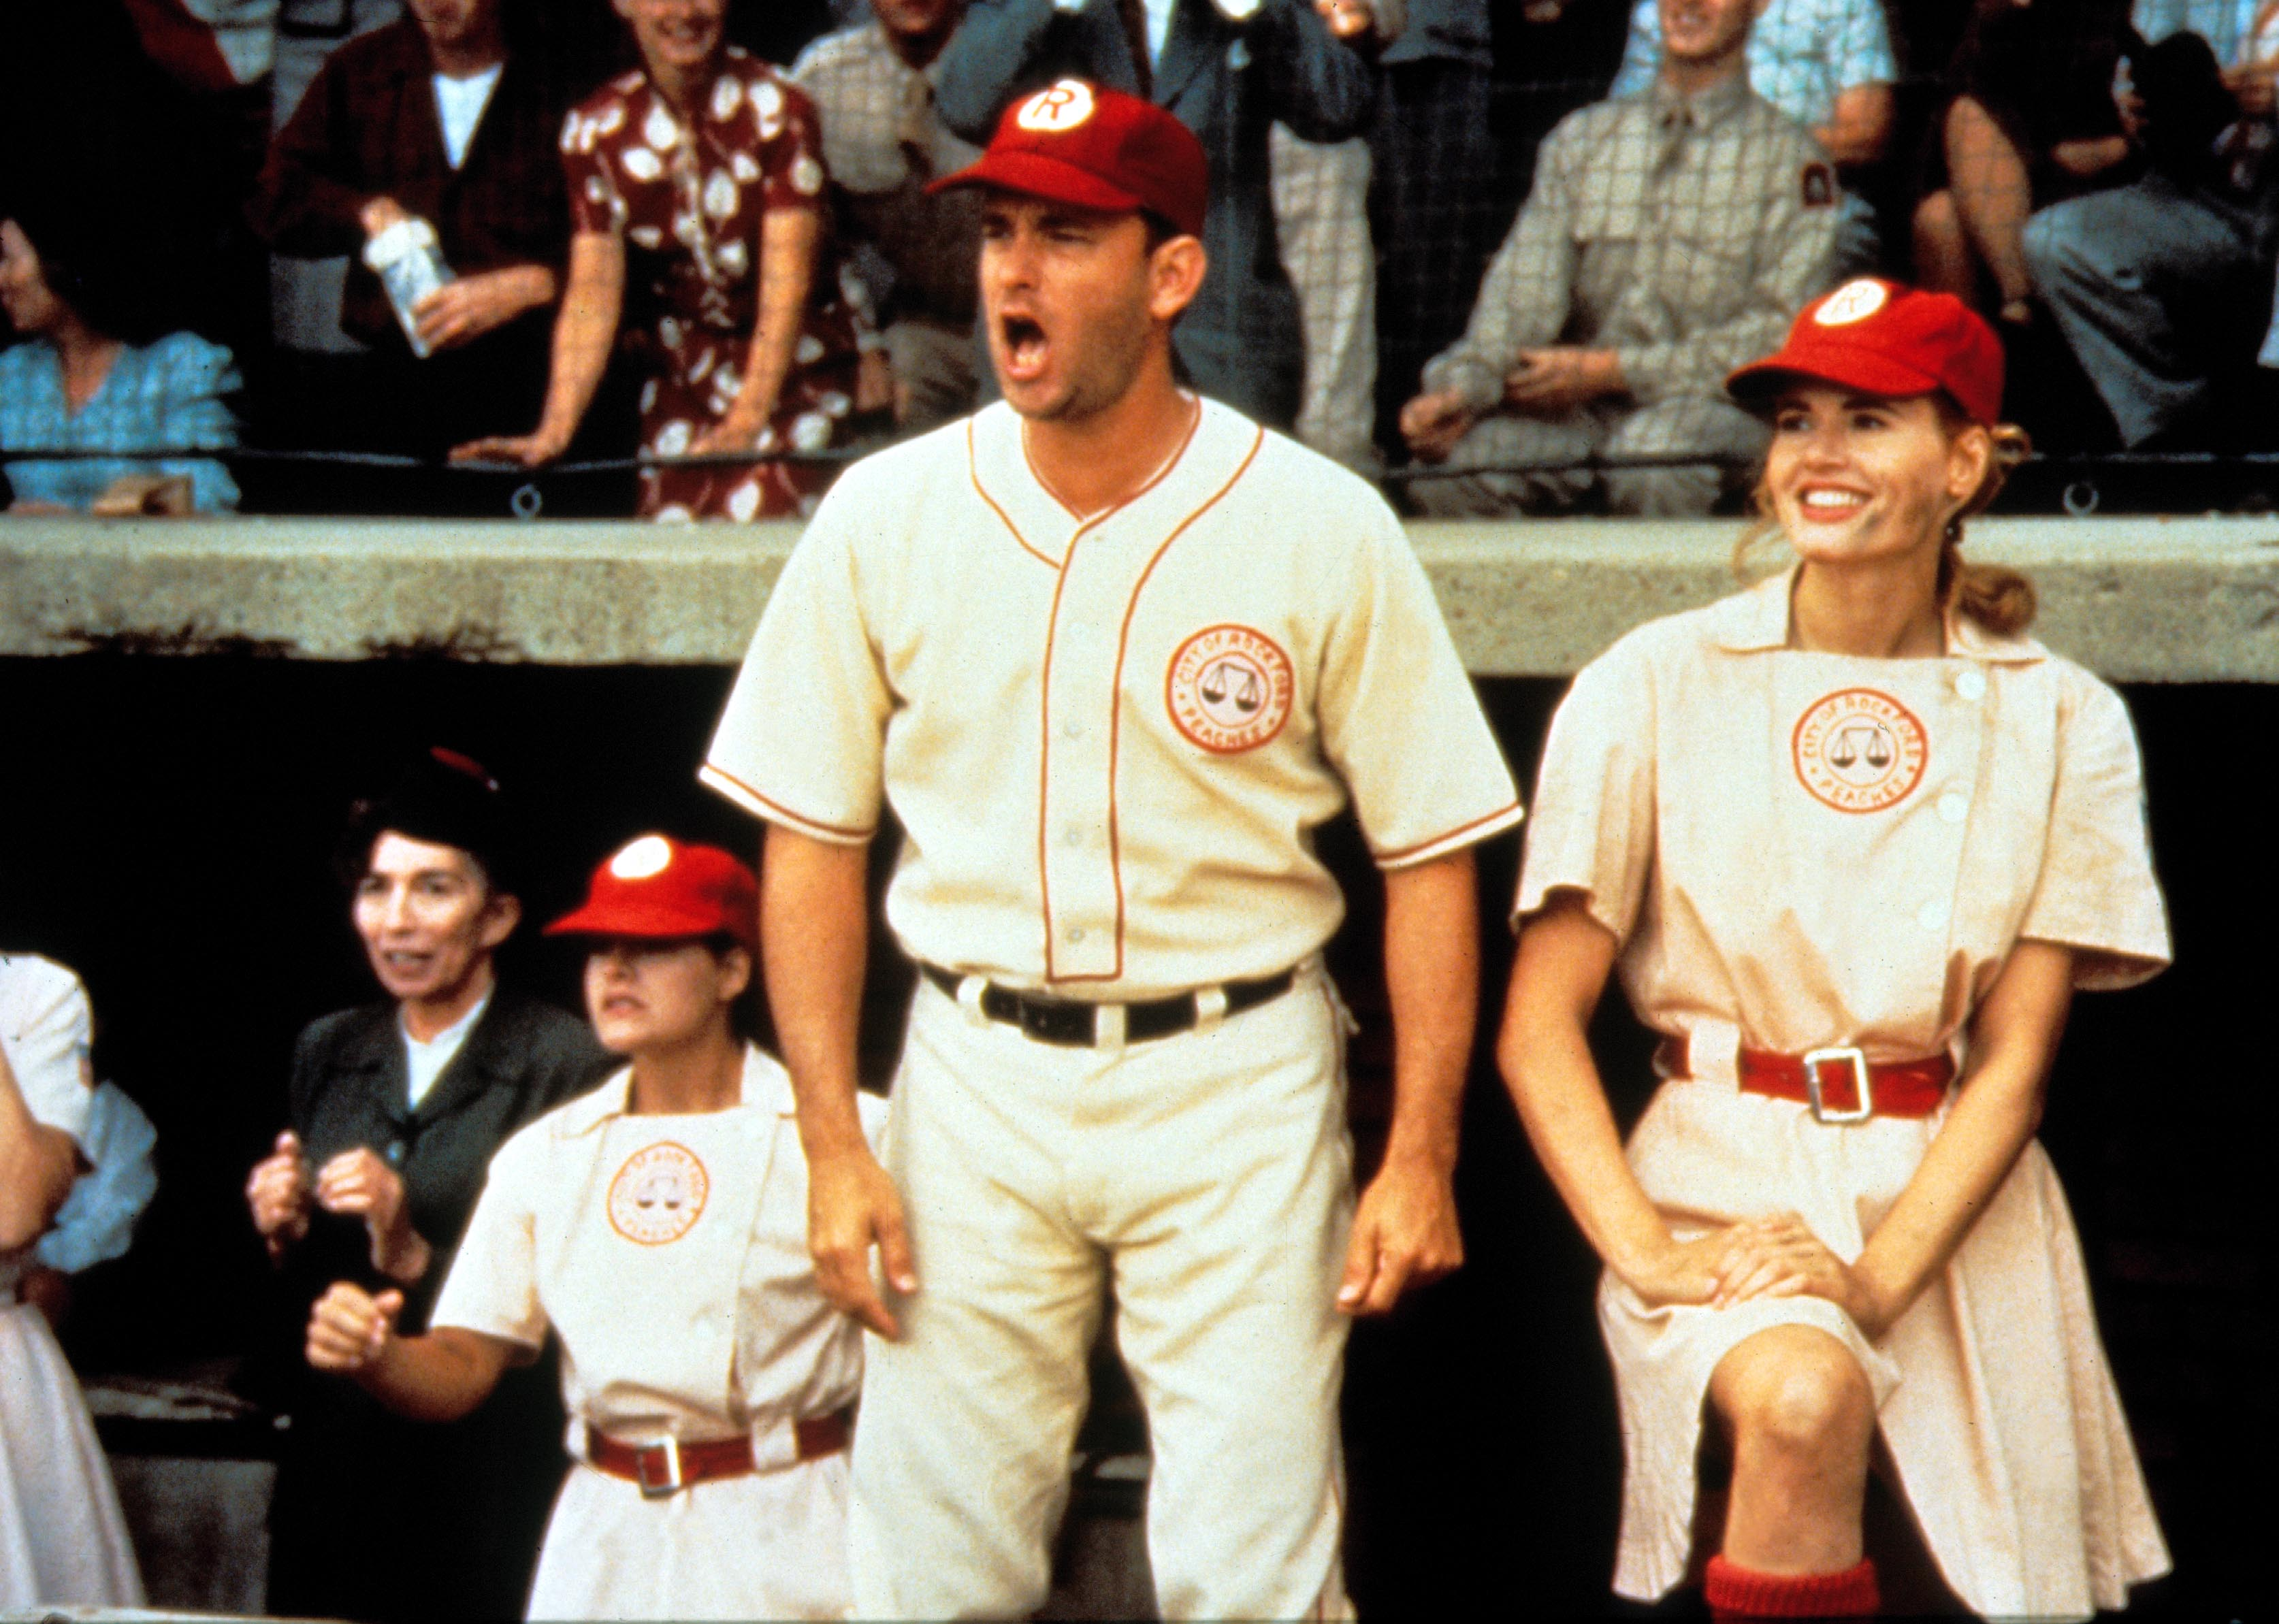 Editorial use only. No book cover usage.Mandatory Credit: Photo by Moviestore/REX/Shutterstock (1562541a) A League Of Their Own, Tom Hanks, Geena Davis Film and Television